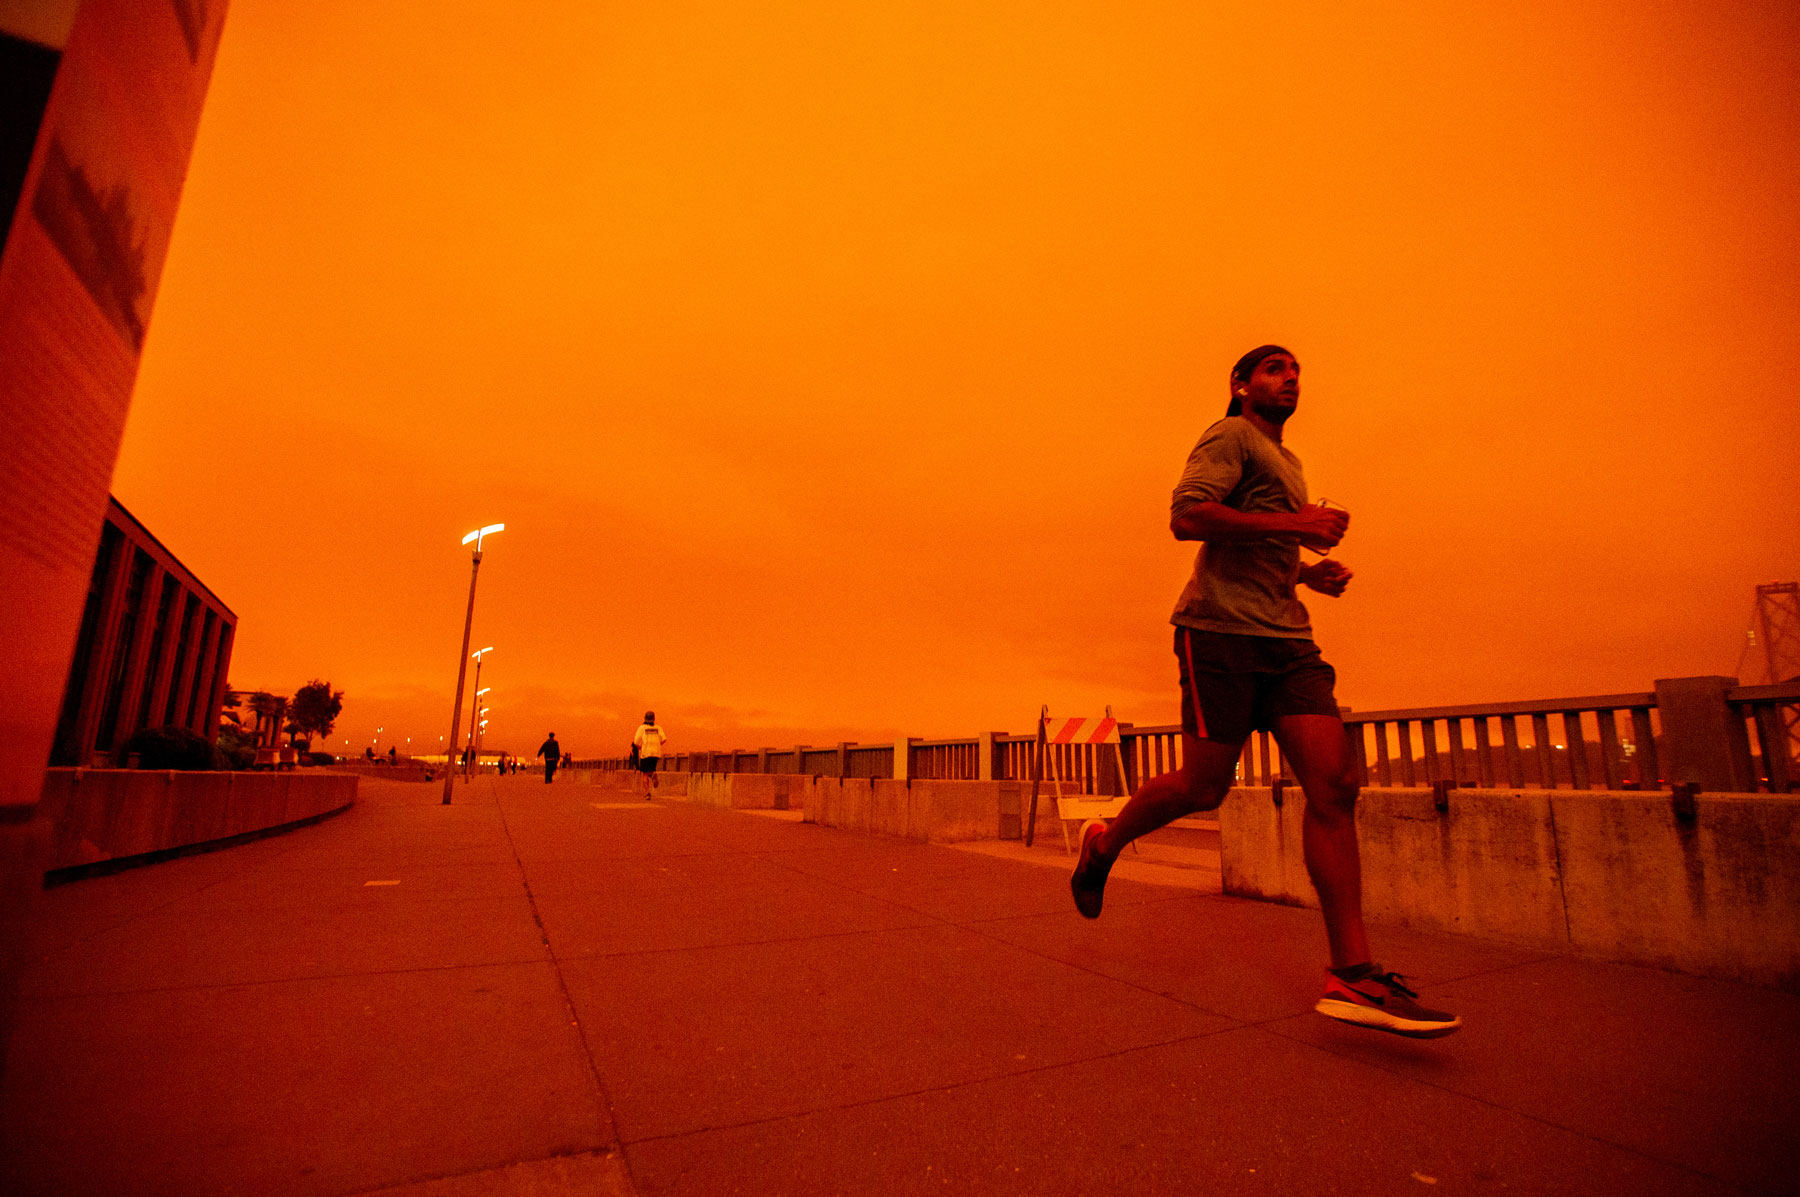 man jogging with red-orange sky in the background